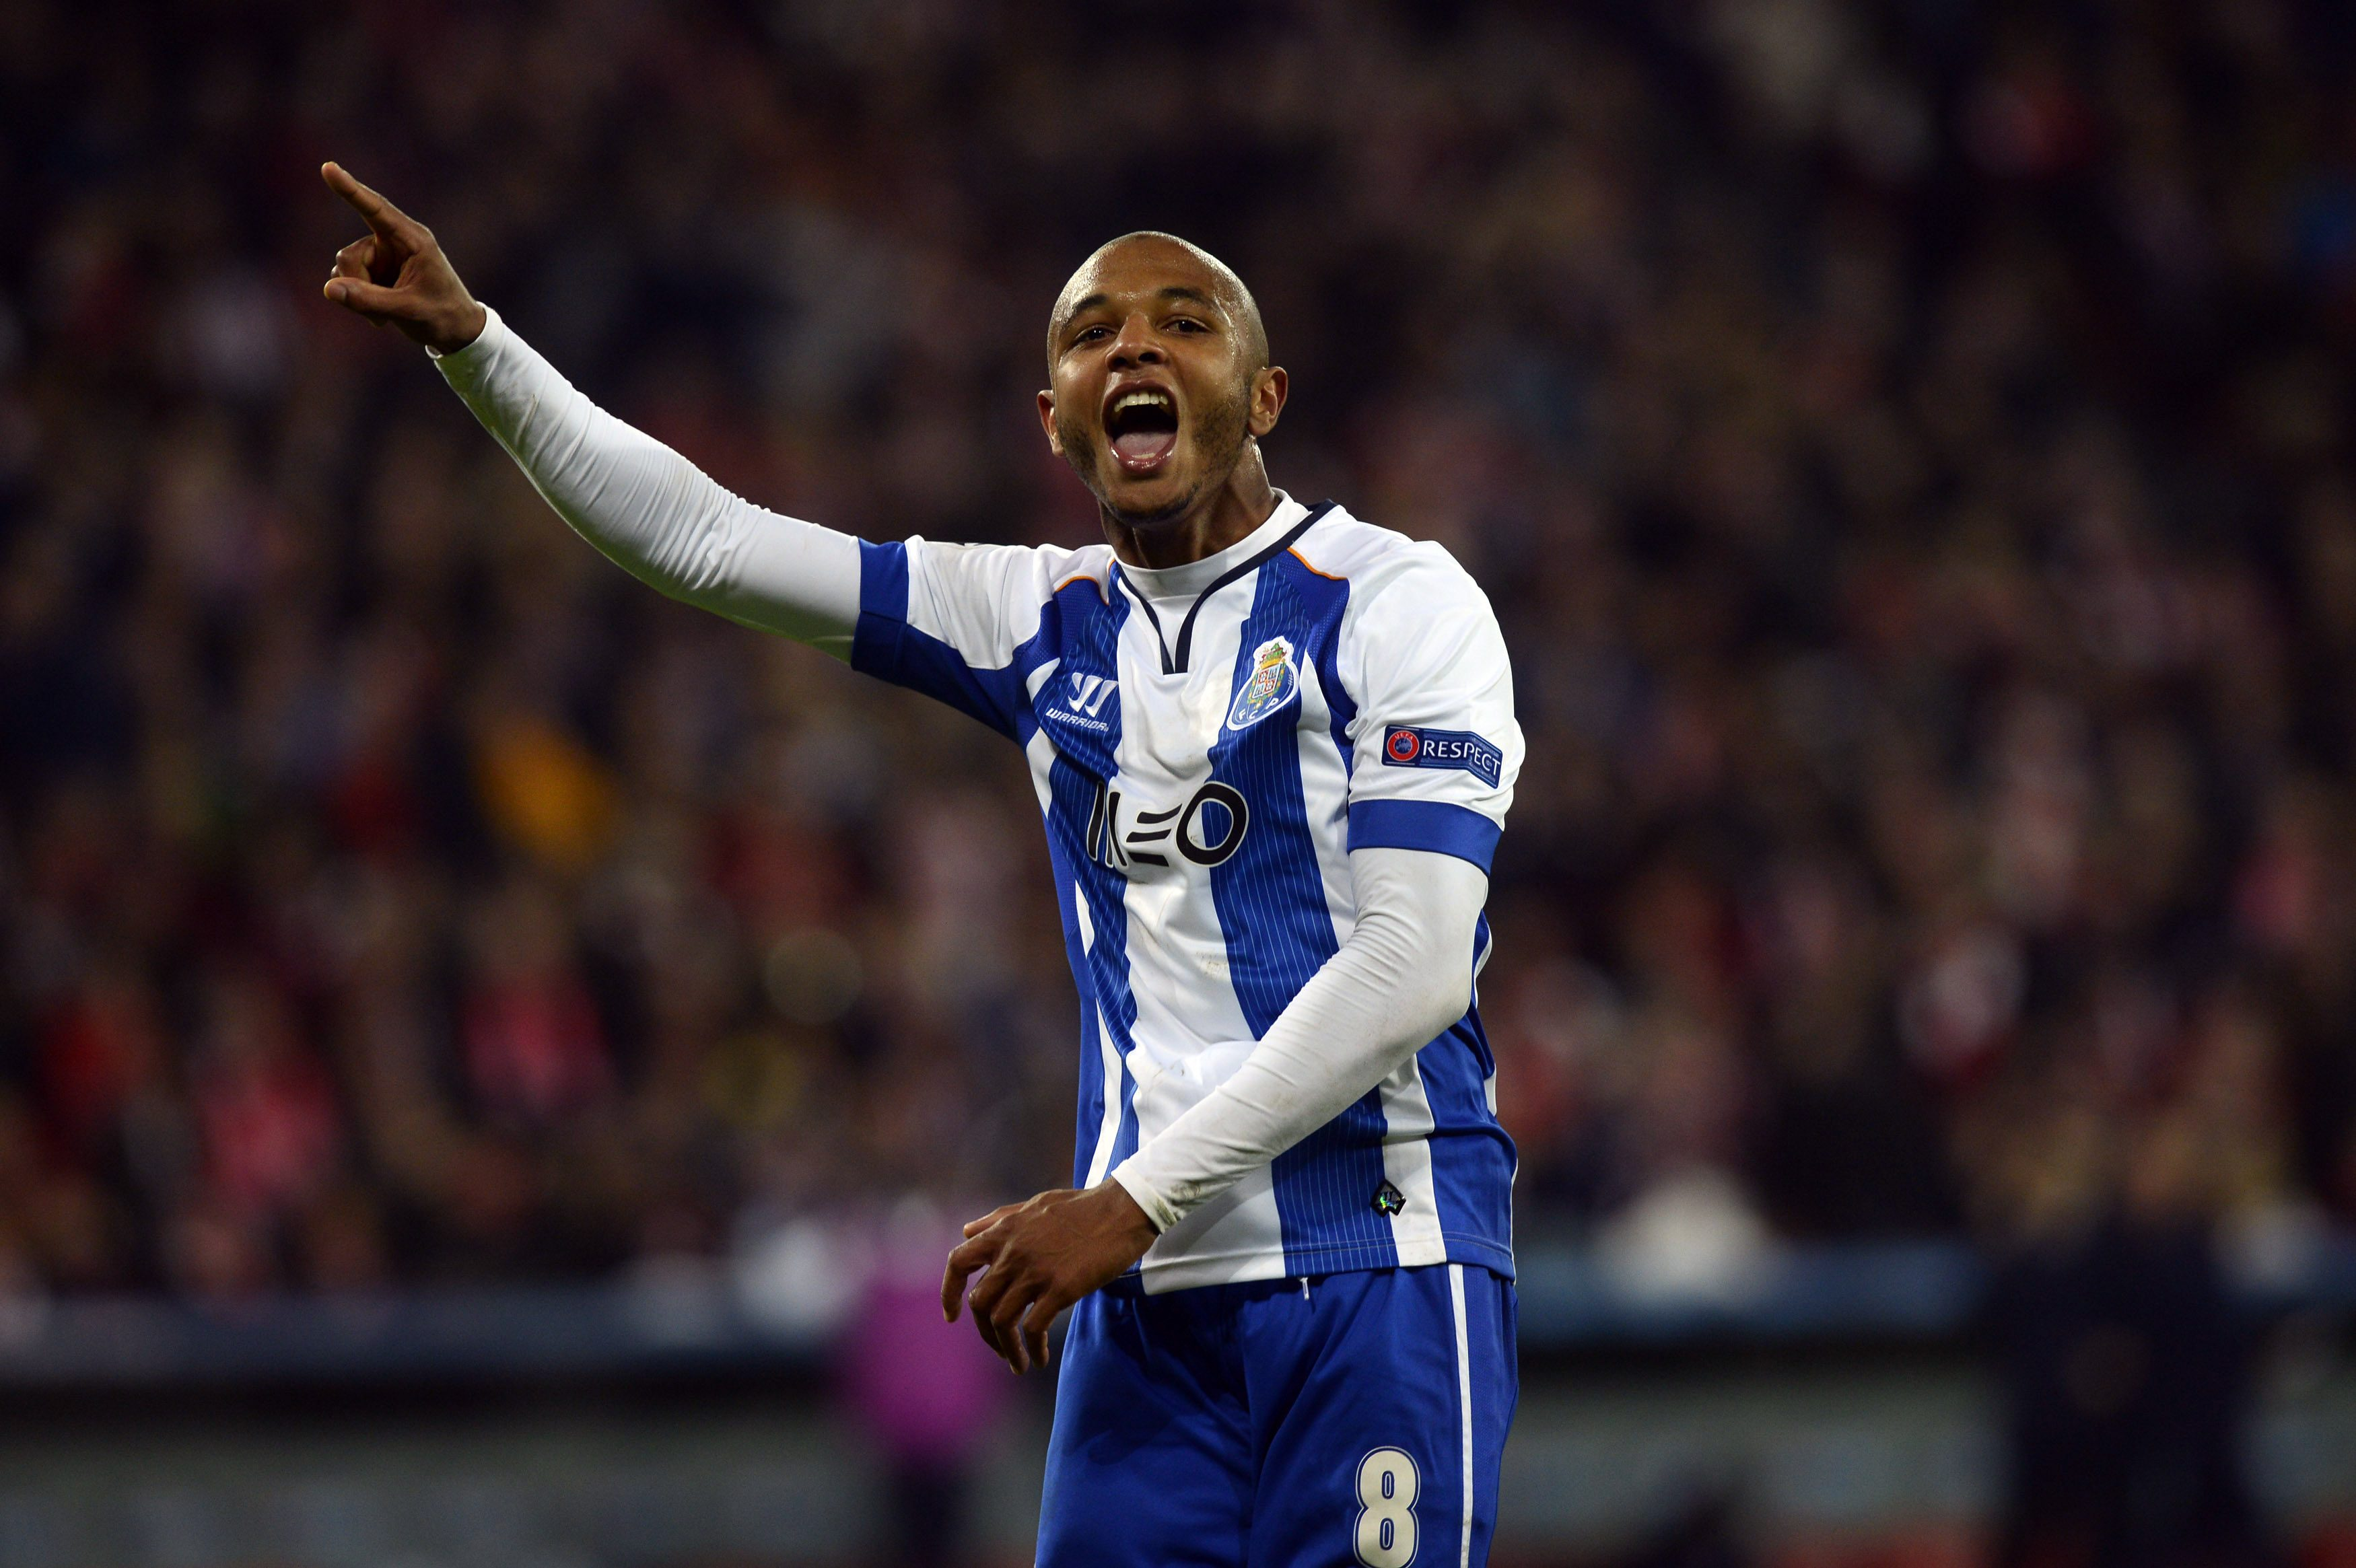 Porto's Yacine Brahimi celebrates a goal during their Champions League Group H soccer match against Athletic Bilbao at San Mames stadium in Bilbao November 5, 2014. REUTERS/Vincent West (SPAIN - Tags: SPORT SOCCER)